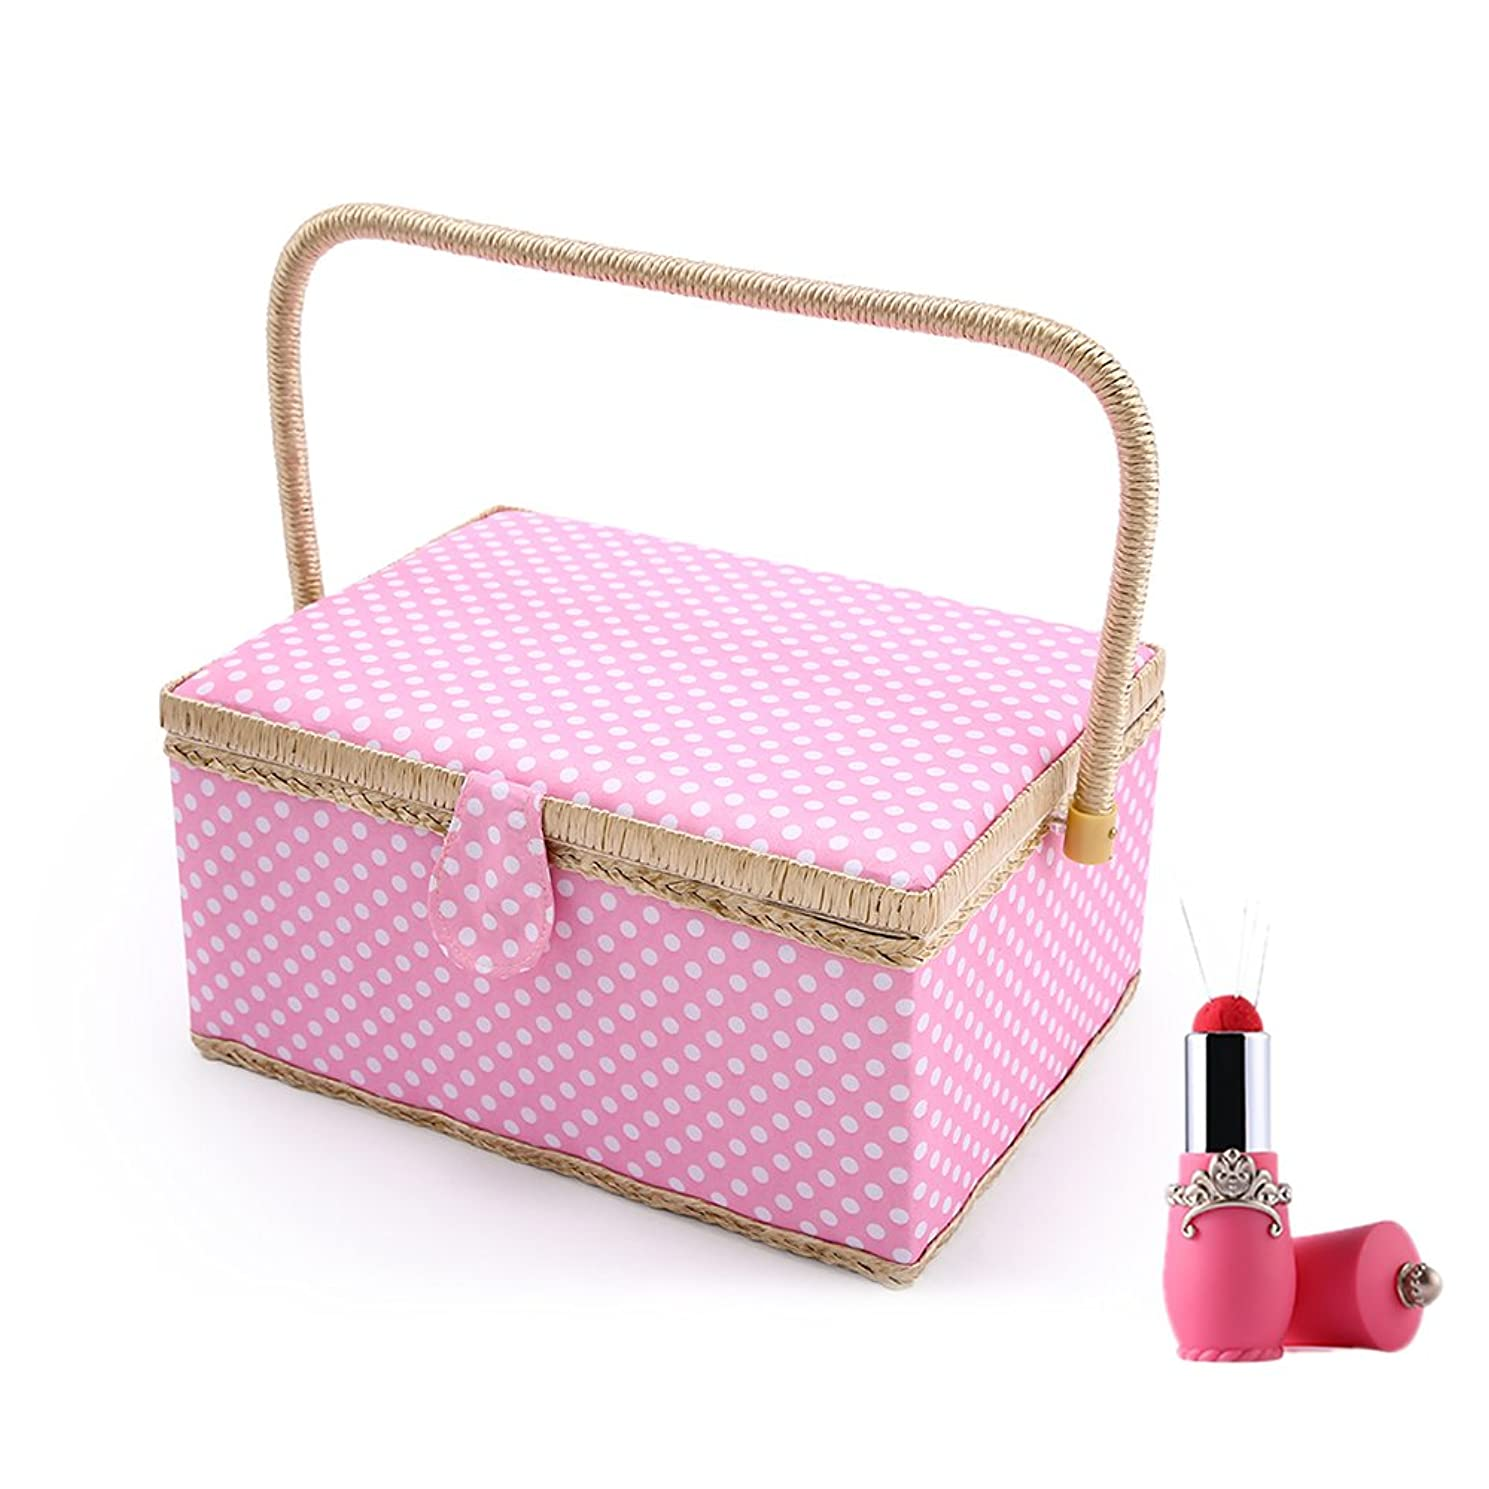 SAXTX Polka Dot Large Sewing Basket Organizer with 100pcs Accessories| Home Essentials Sewing Kit Box for Quilting Embroidery | 12 1/5 x 9 x 6 1/3 inches|Pink